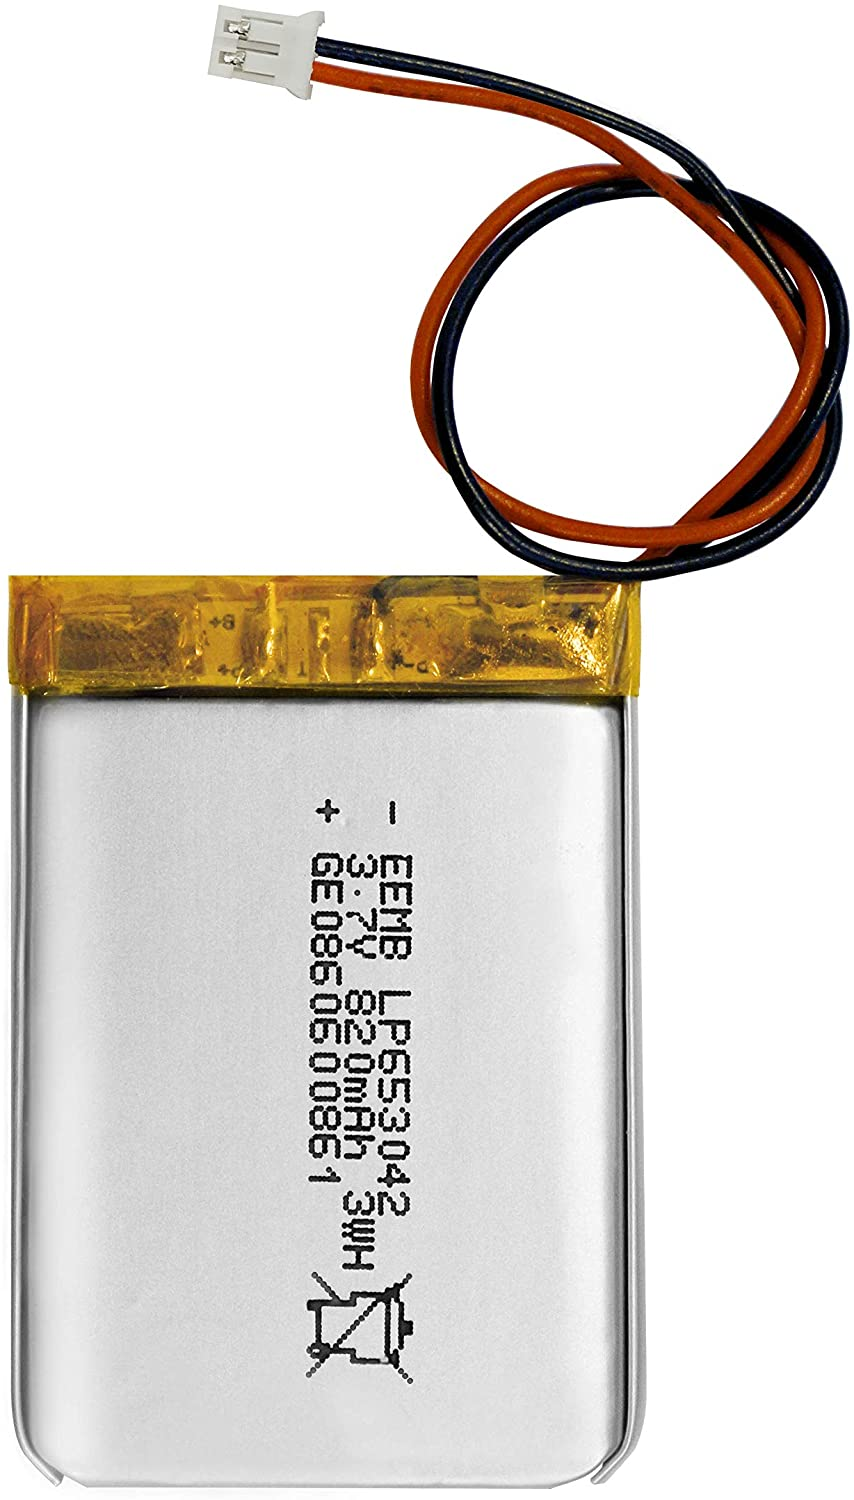 EEMB 3.7V 820mAh 653042 Lipo Battery Rechargeable Lithium Polymer ion Battery PCS with JST Connector UN38.3 (UL Certified for Cell)